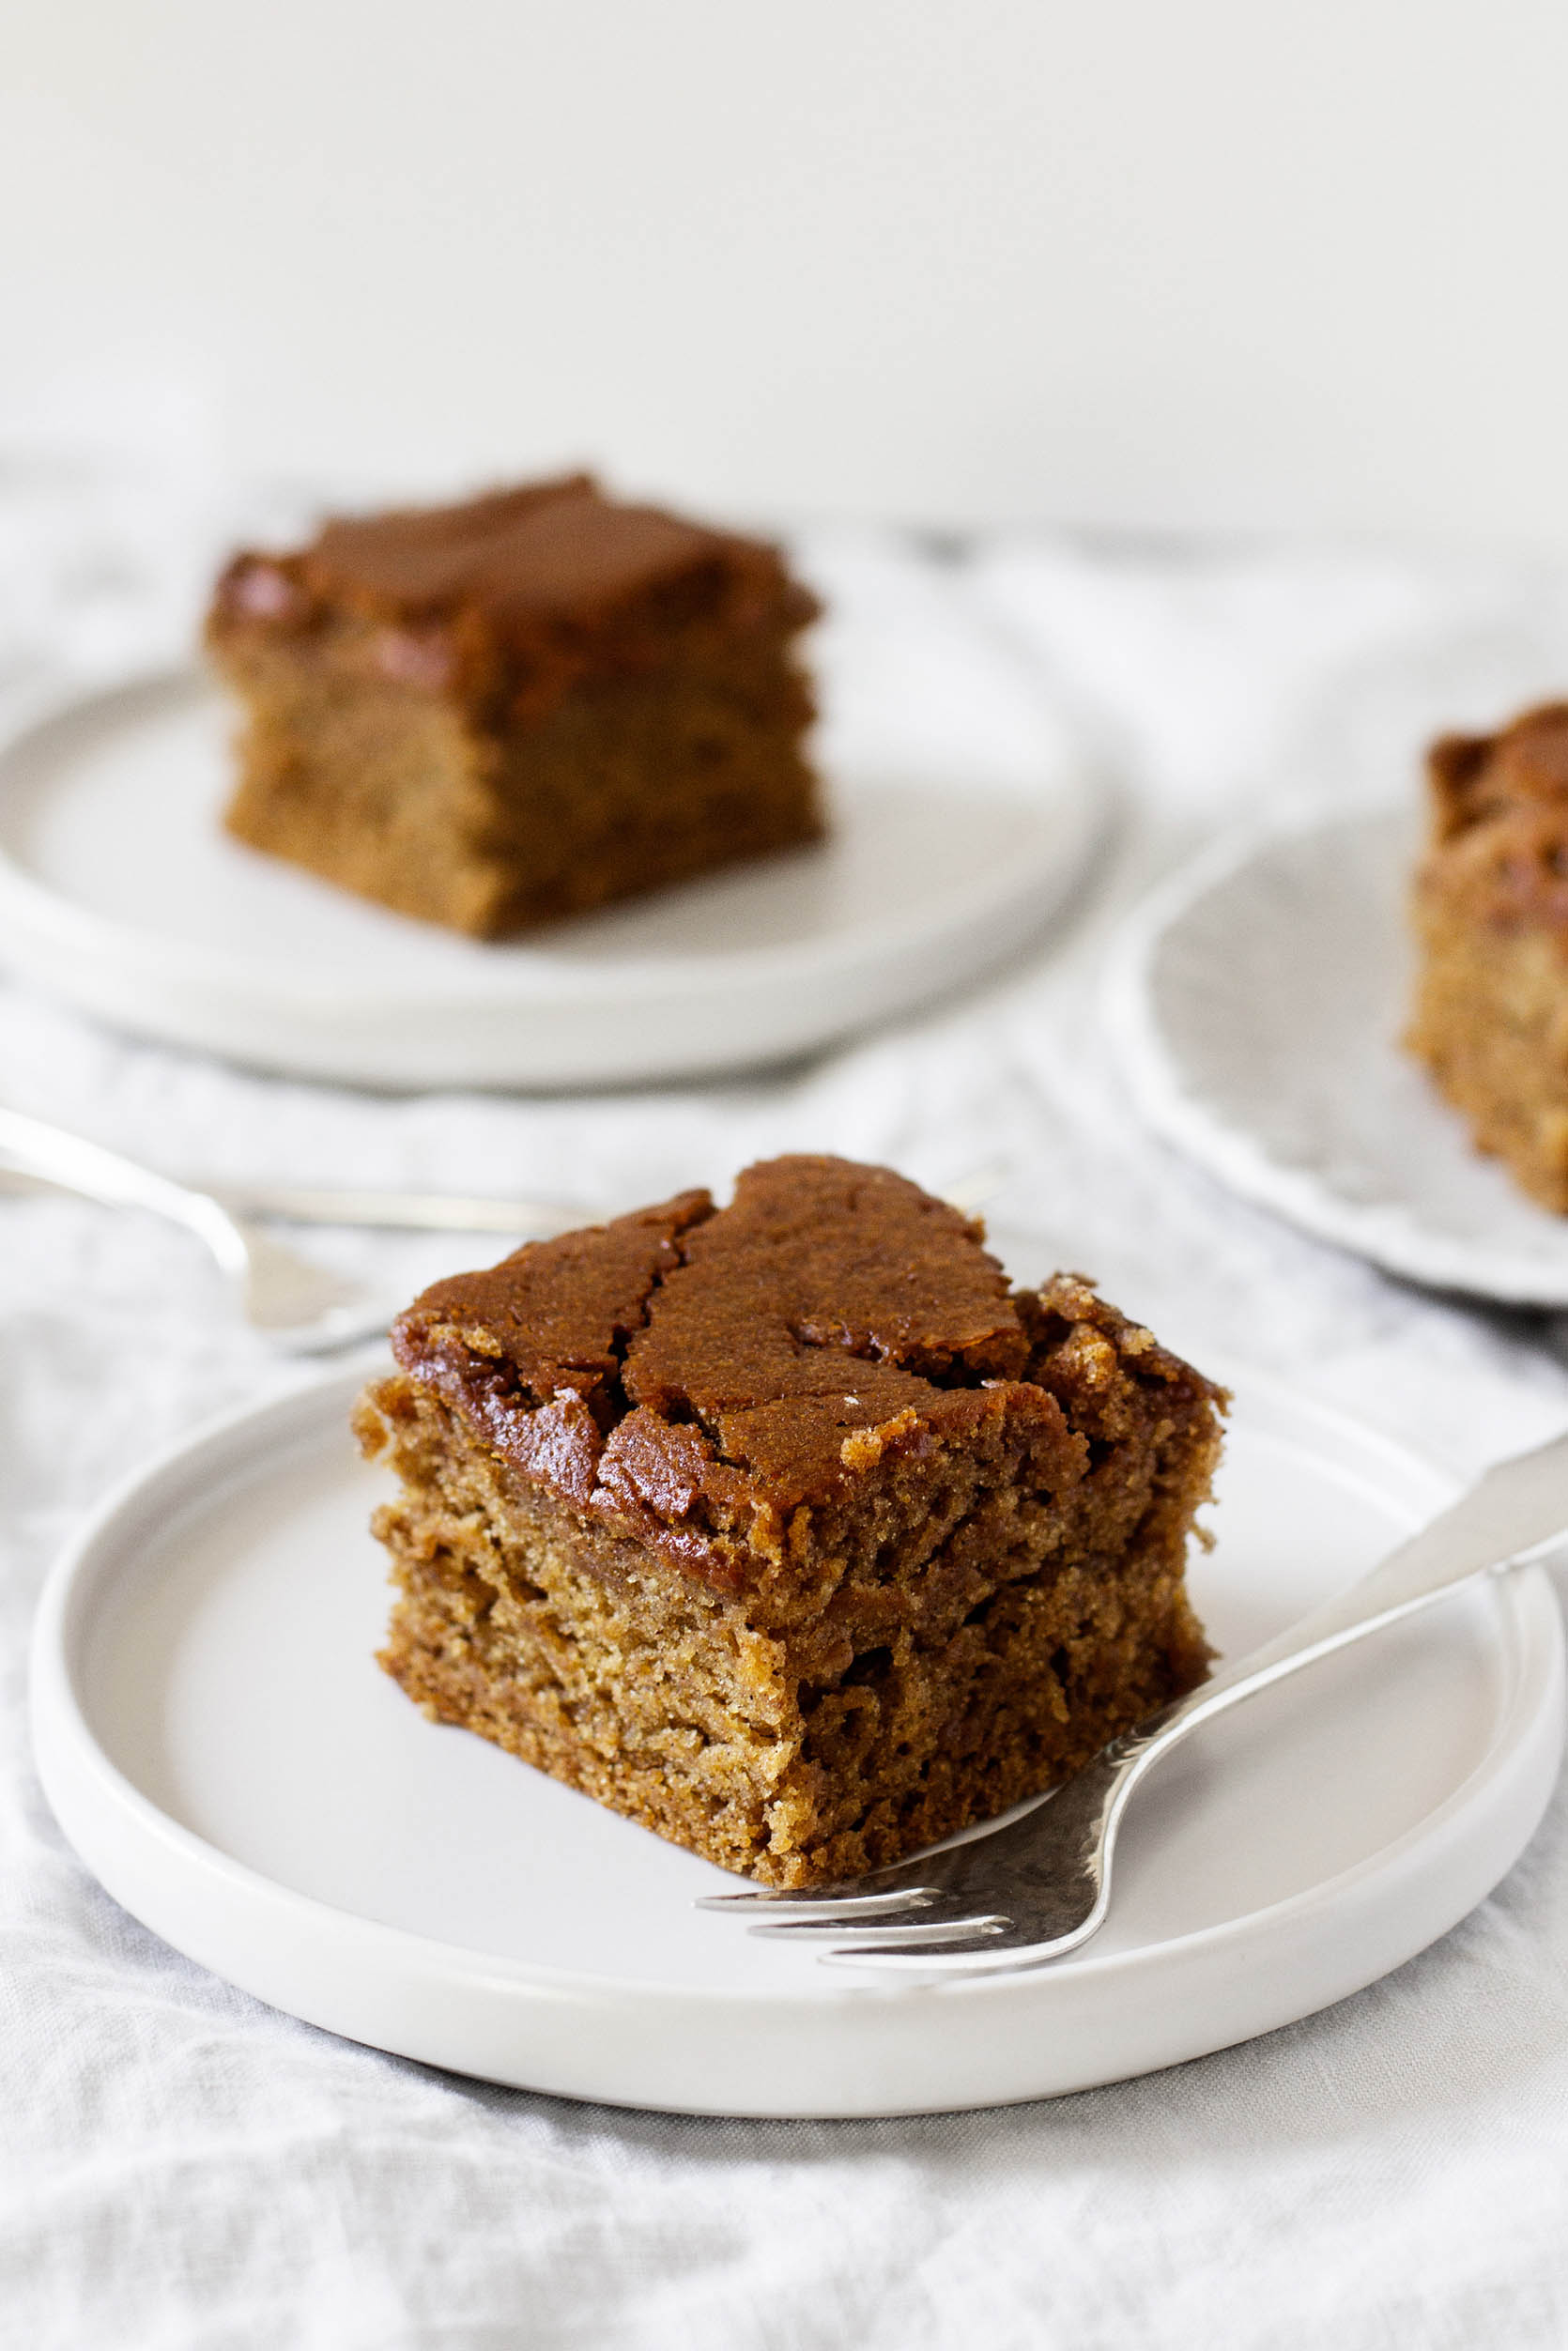 Several dessert plates are topped with squares of gingerbread and accompanied by dessert forks.